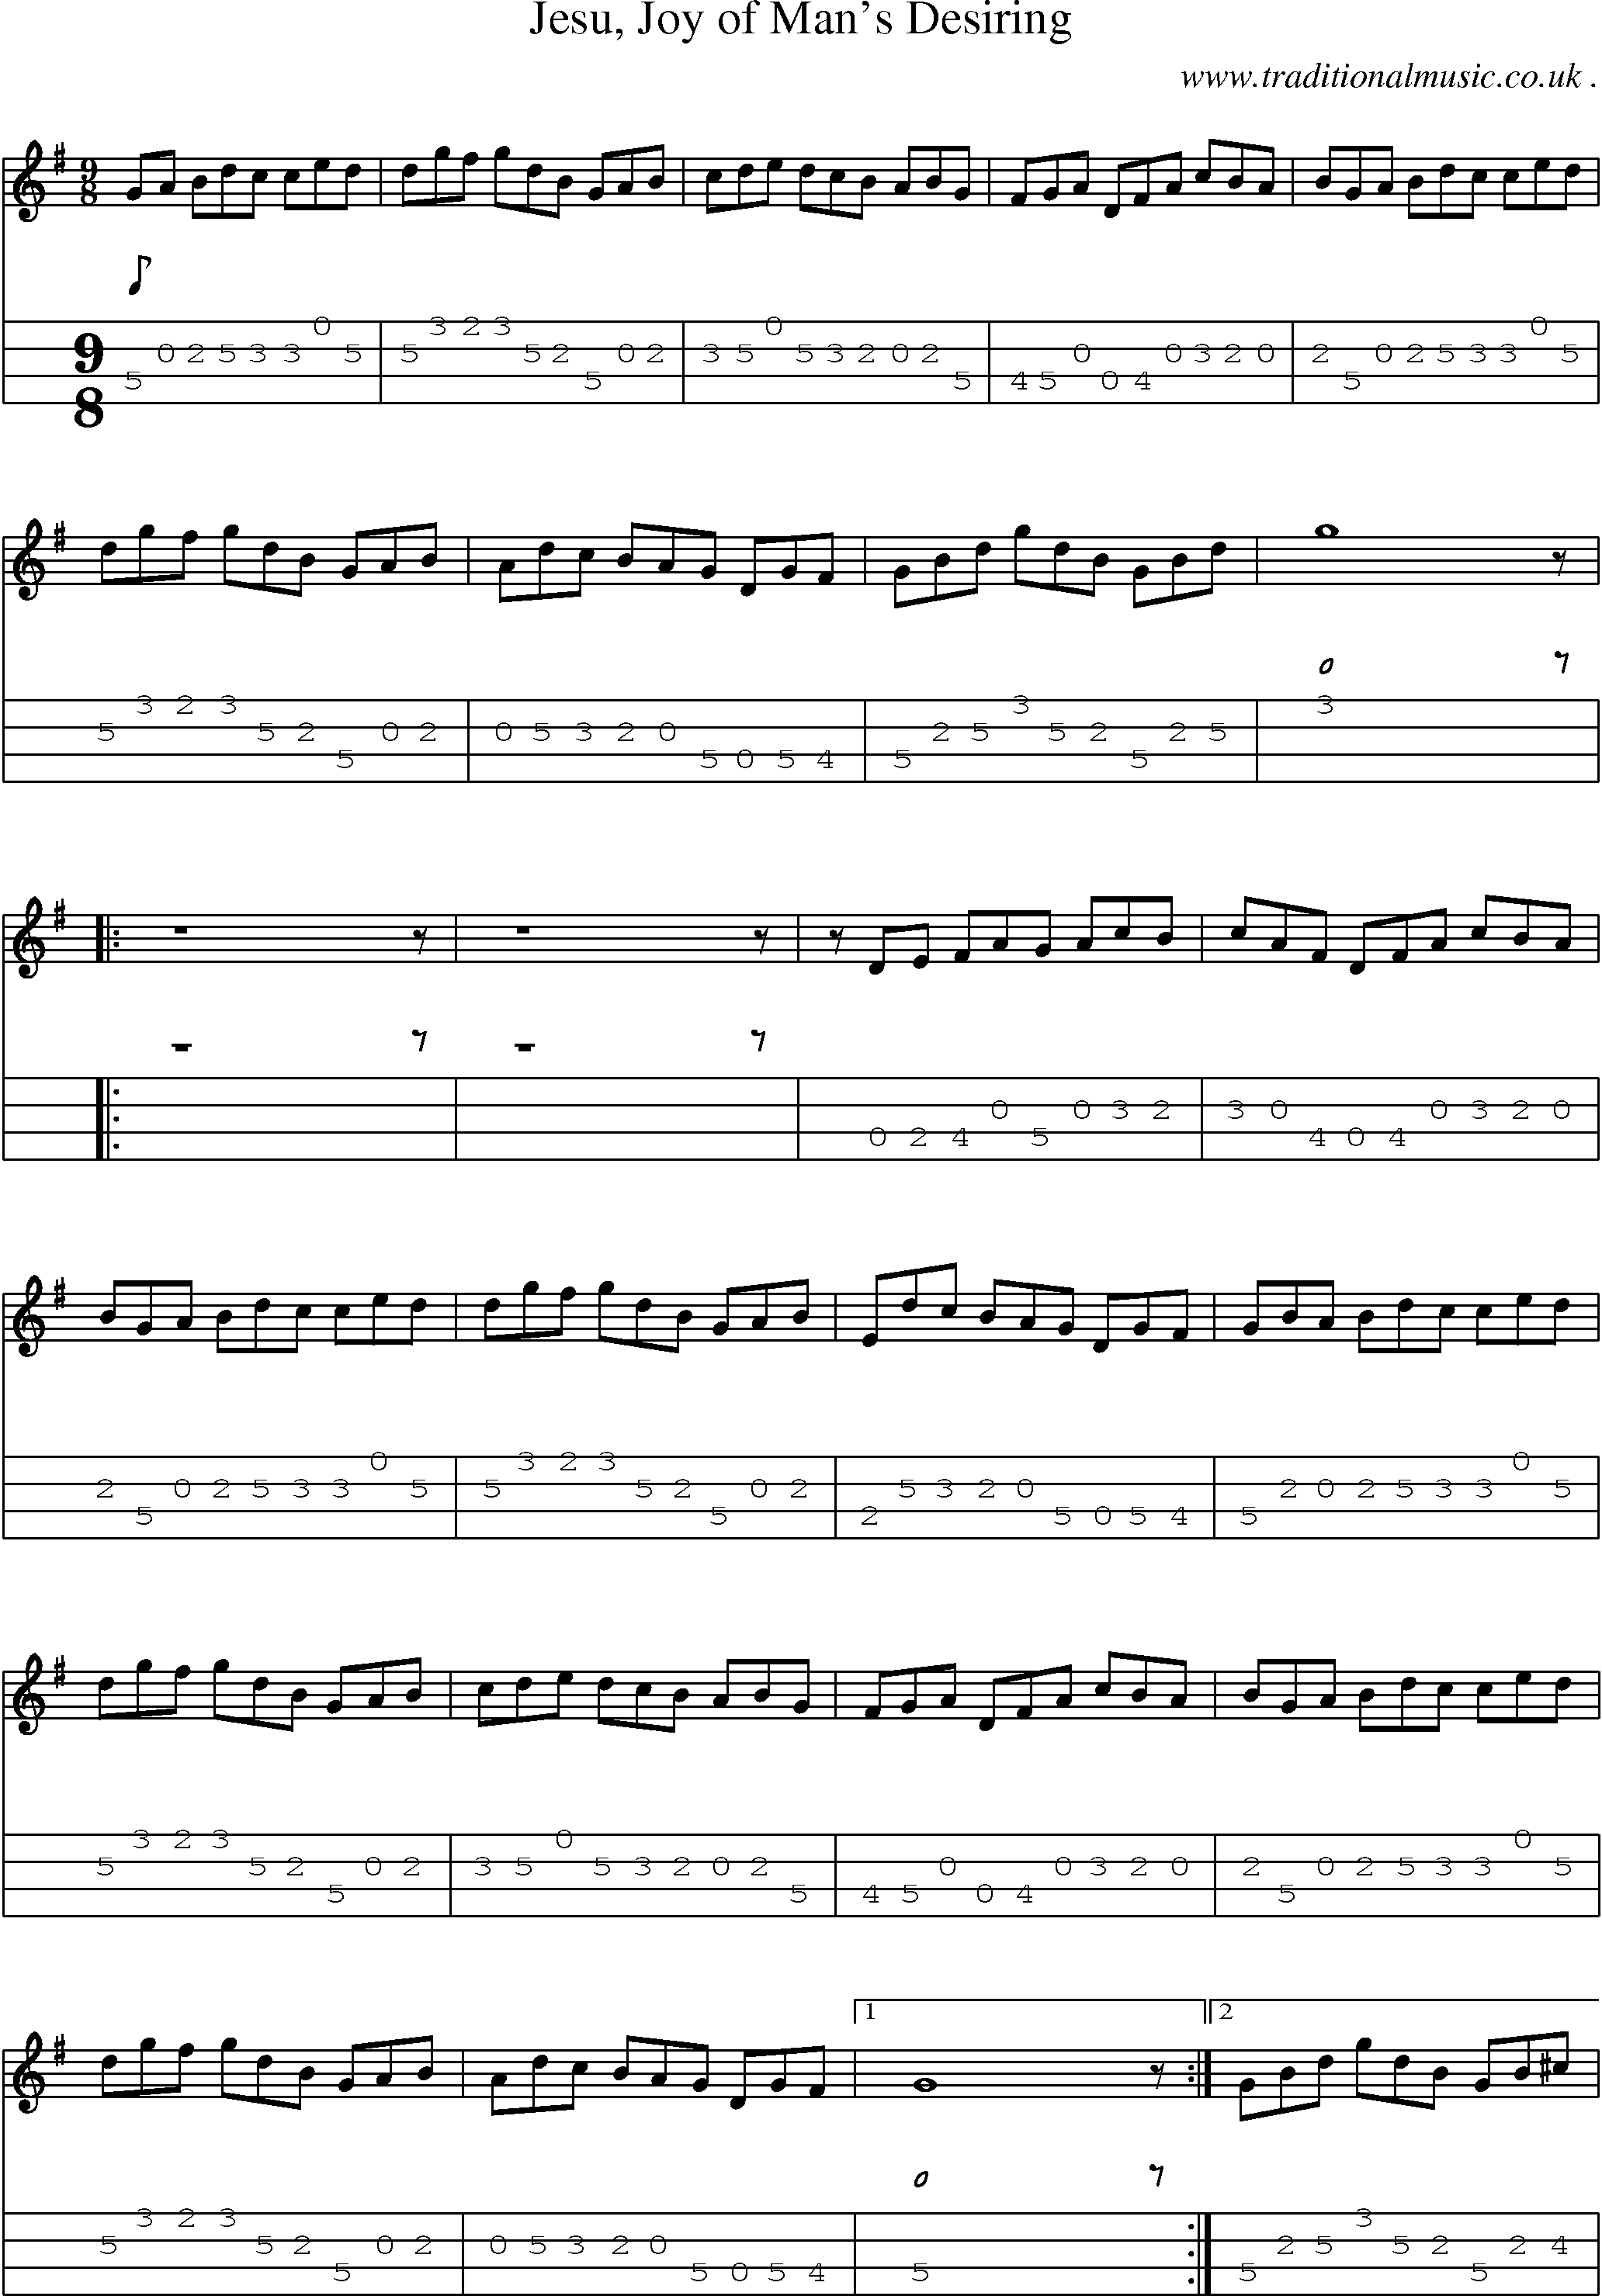 Common session tunes, Sheetmusic, Tabs for Mandolin, midi and mp3 for Jesu Joy Of Mans Desiring